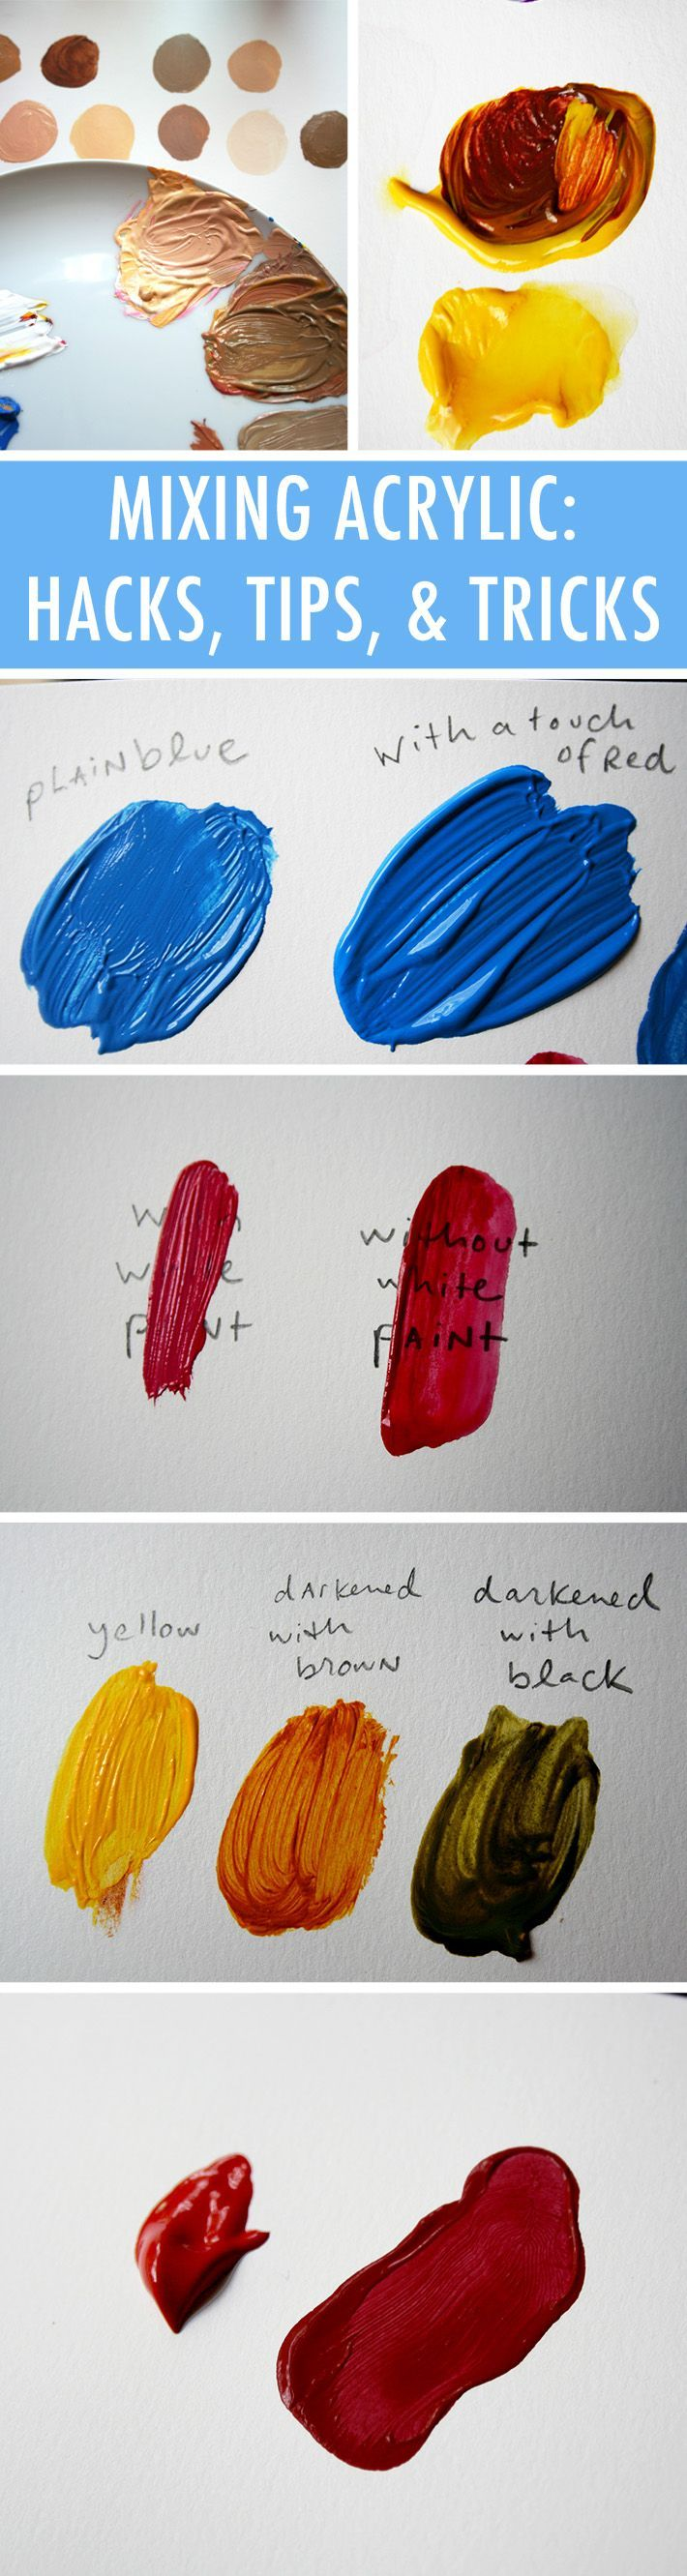 11 Hacks for Mixing Acrylic Paint Perfectly